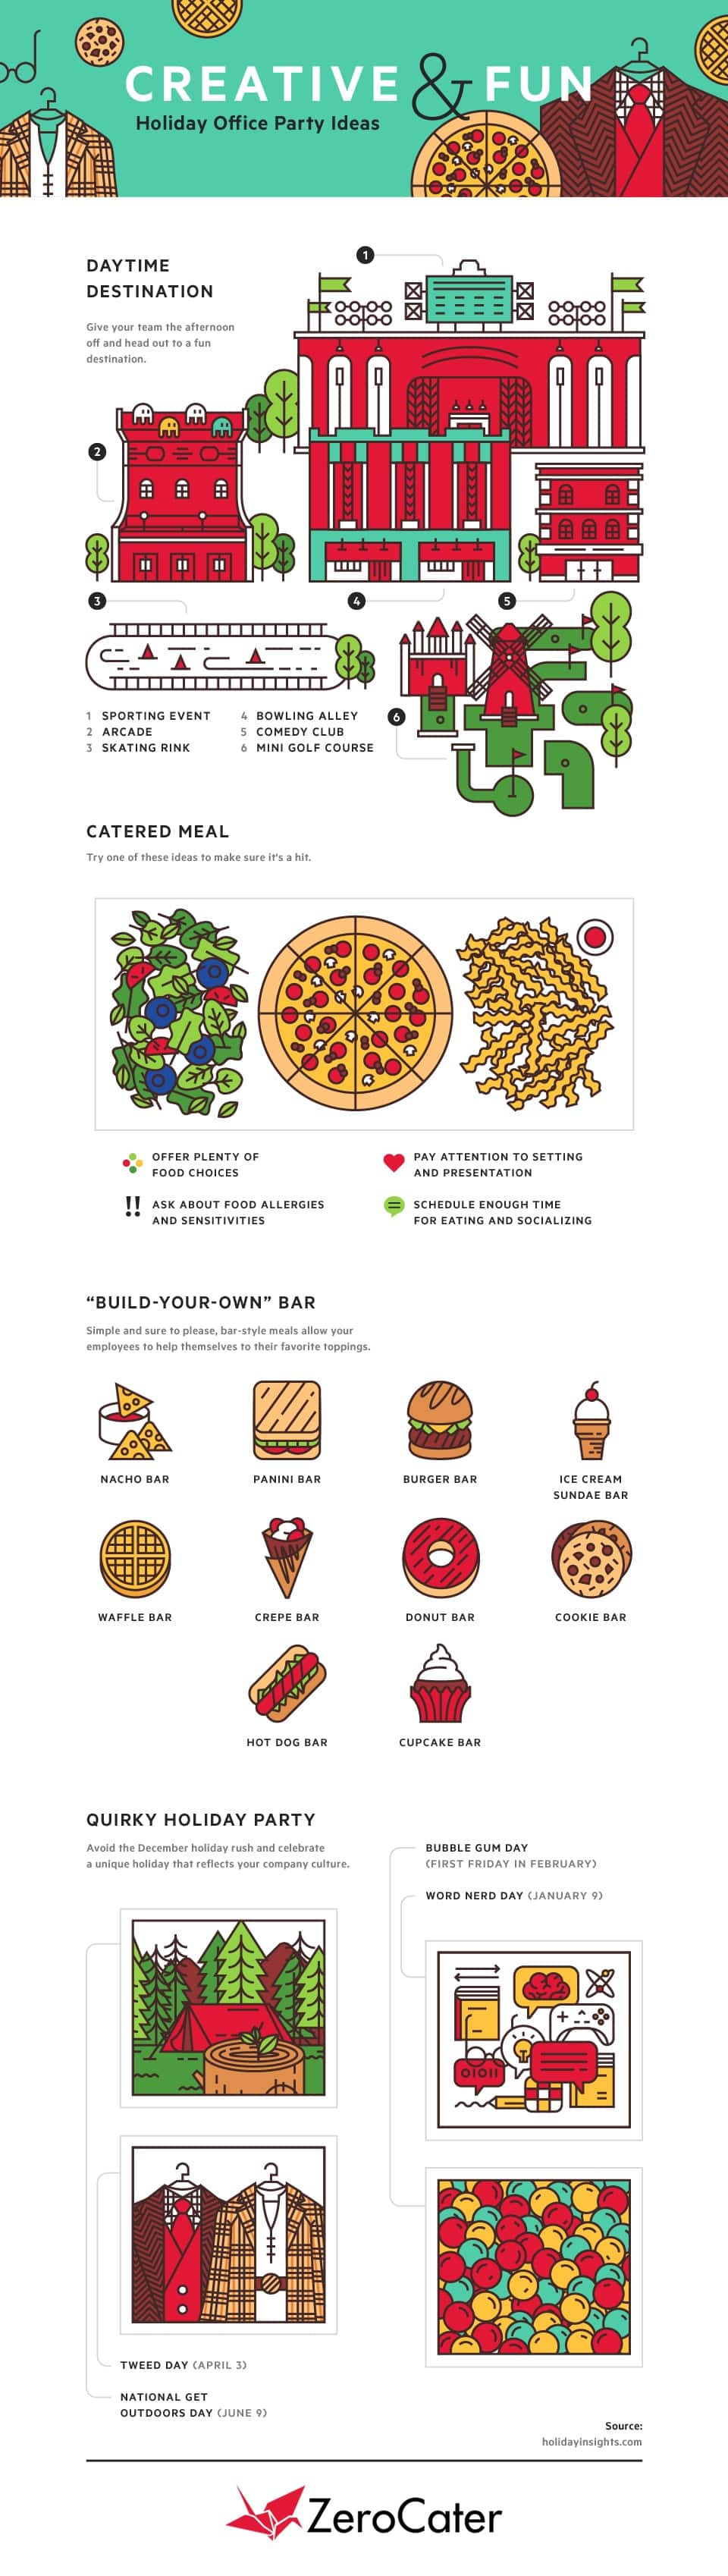 Creative Holiday Party Ideas InfoGraphics